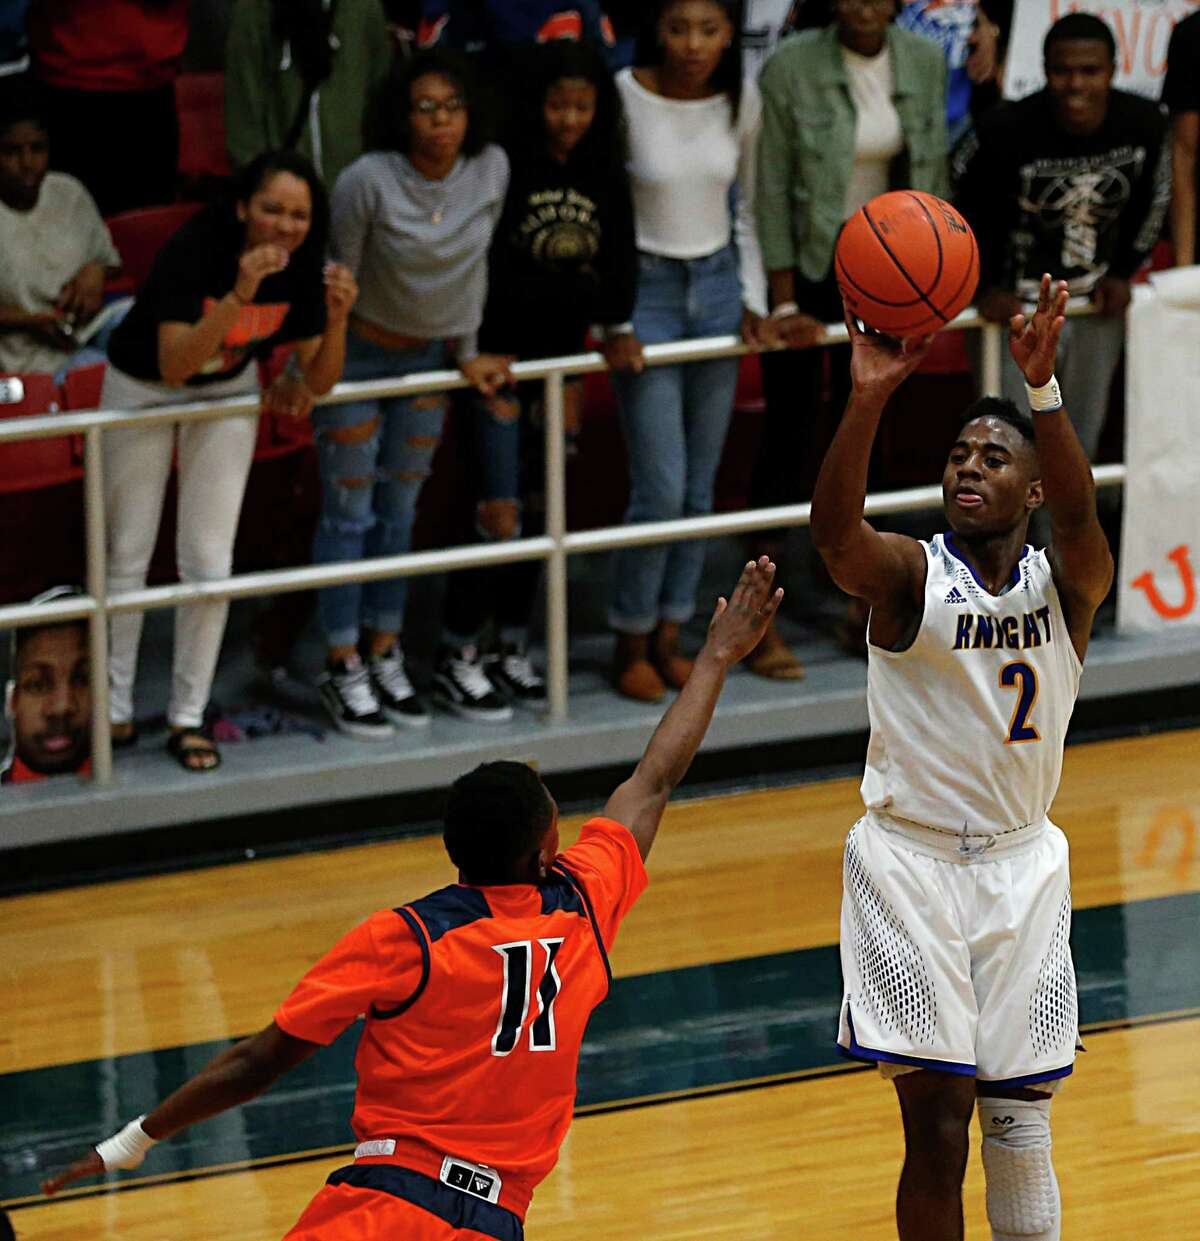 Elkins Kenneth Busby right, shoots over Bush's Remy Minor left, during the first half of boy's high school basketball game action at Wheeler Field House Tuesday, Feb. 16, 2016, in Sugar Land.